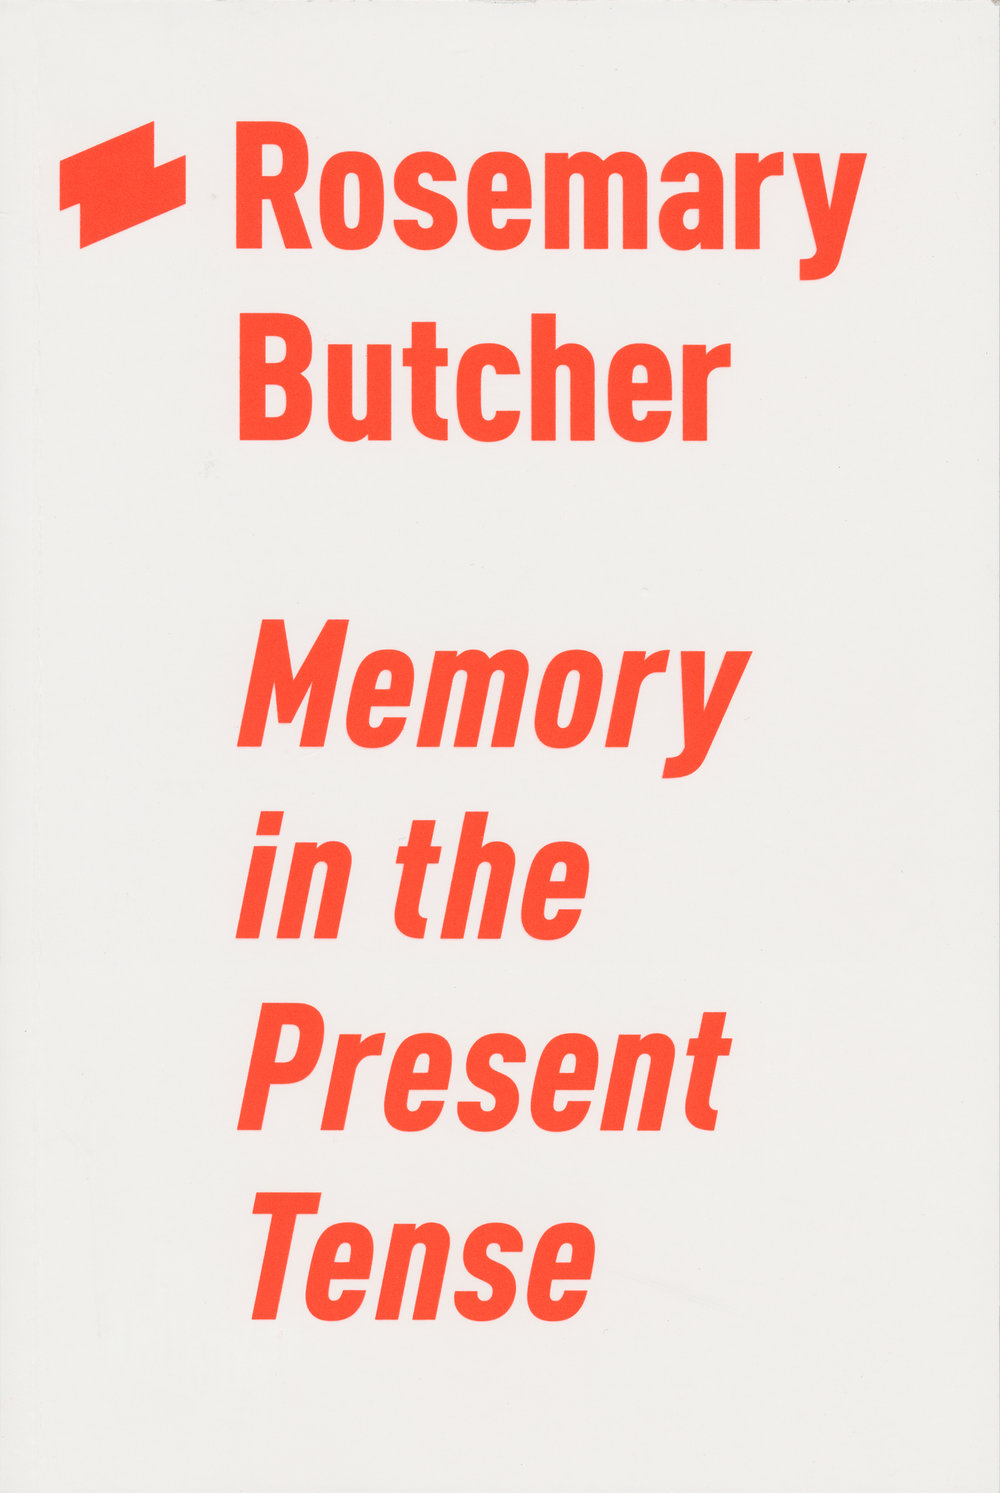 Rosemary_Butcher_Memory_in_the_Present_Tense_HAU_Hebbel_Am_Ufer_2016.jpg